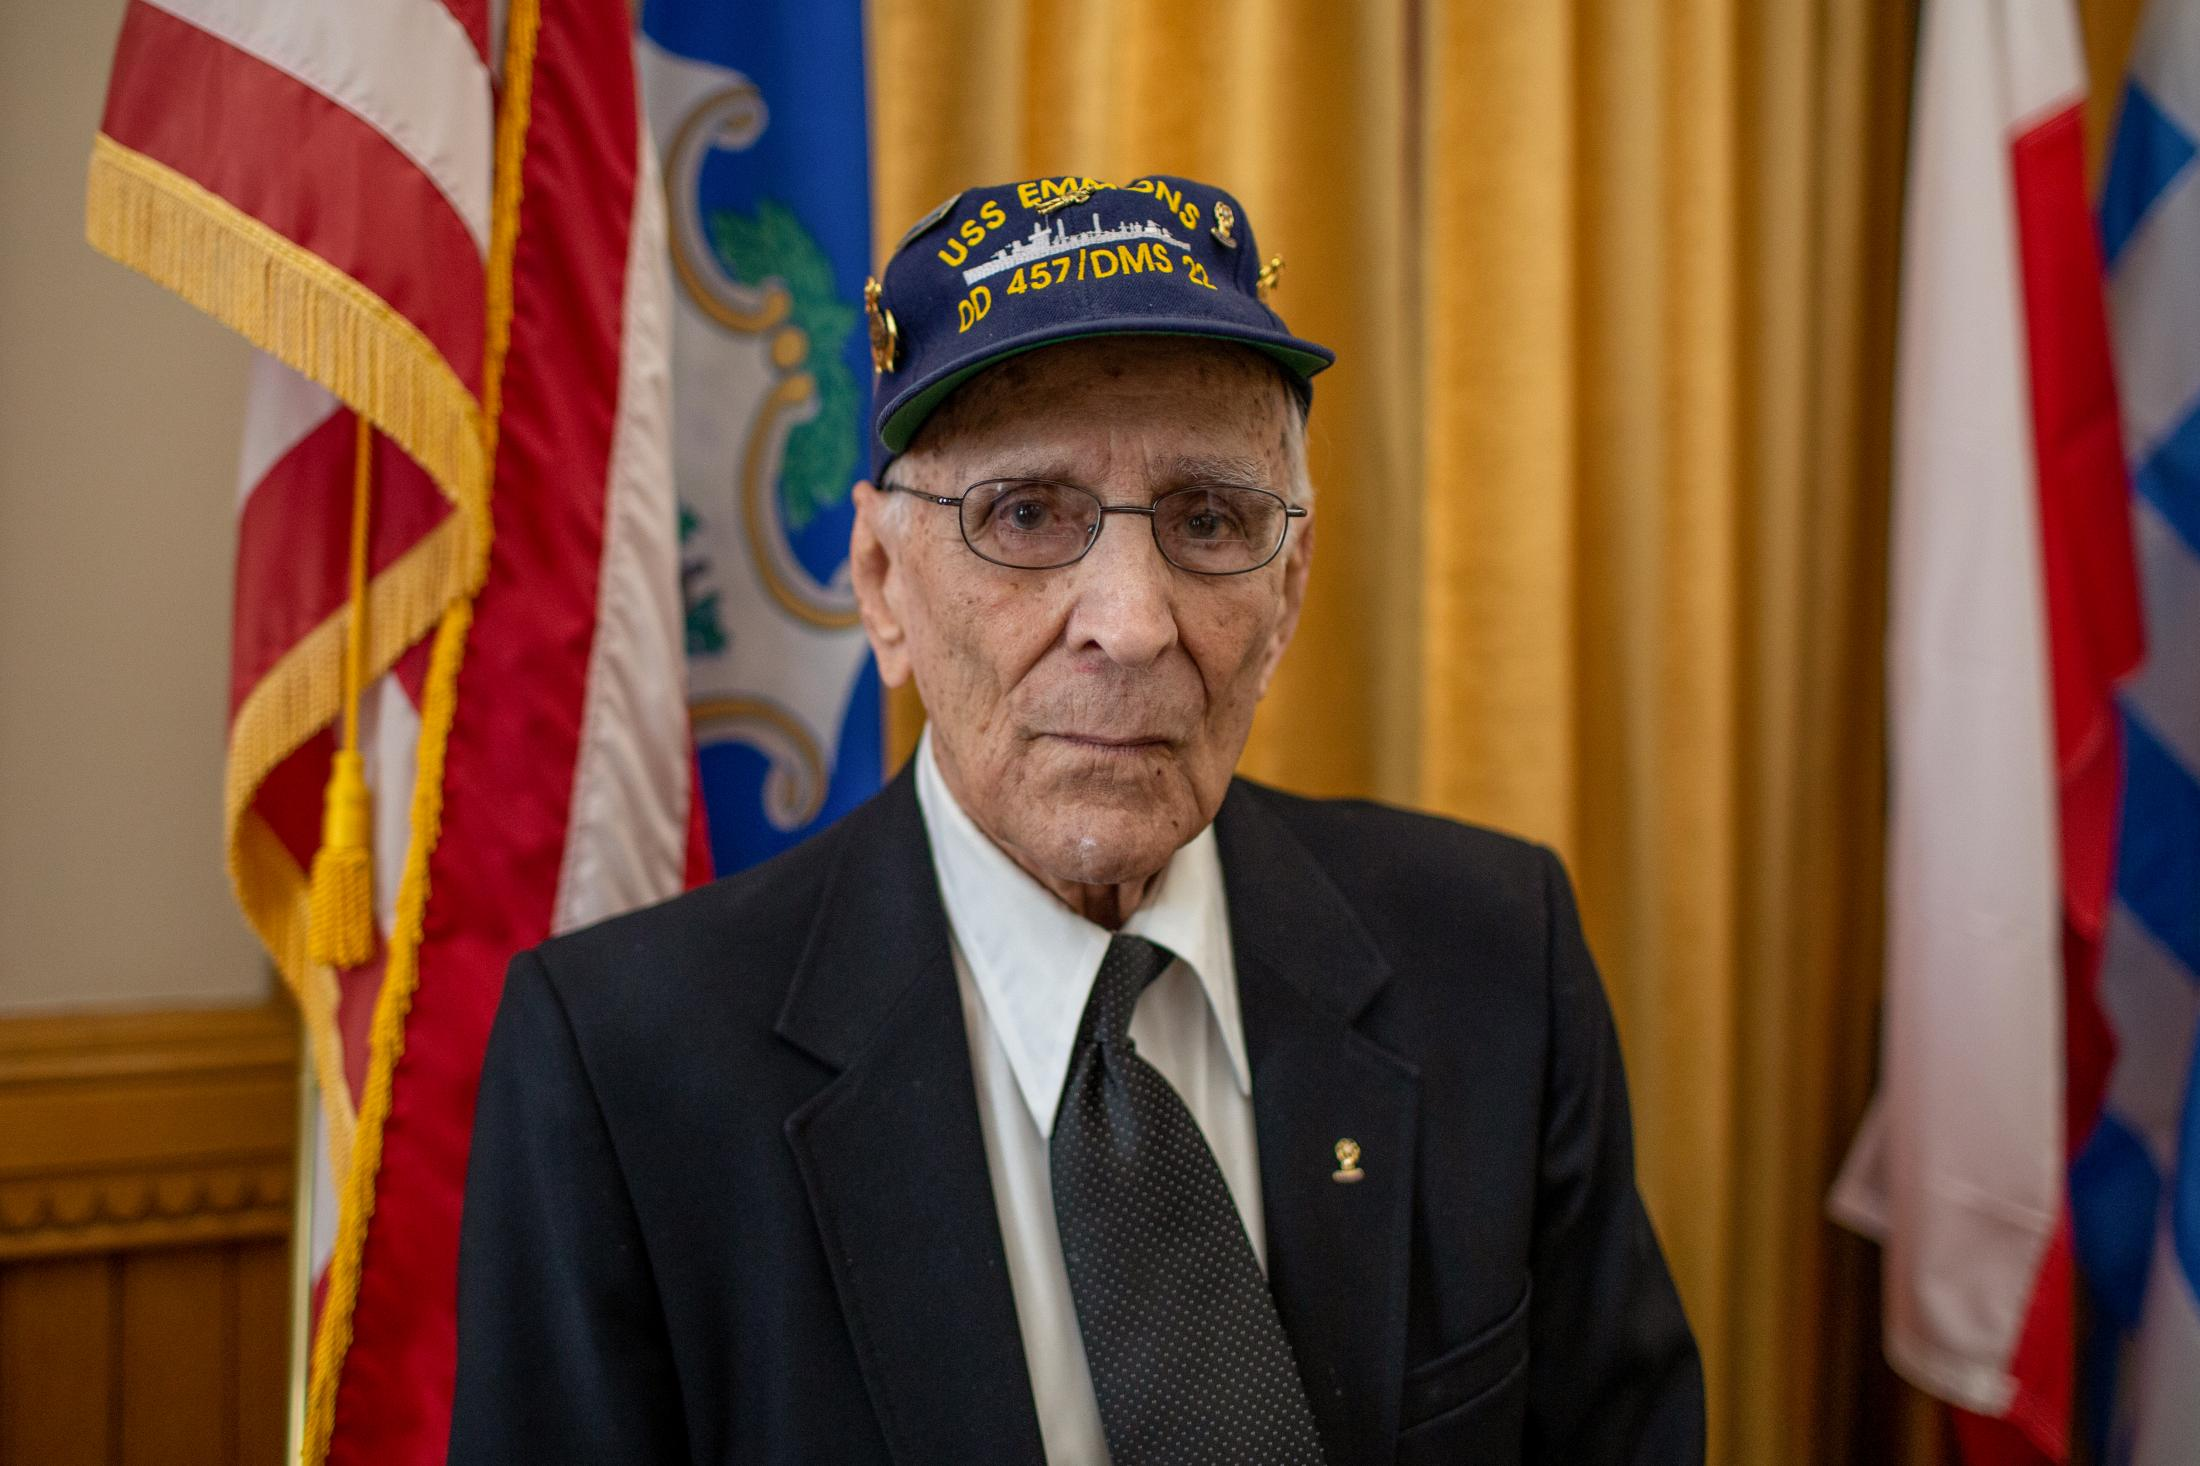 96-year-old World War II Navy veteran Armand Jolly of Pomfret poses for a portrait after a press conference at Lt. Governor Susan Bysiewicz's office in Hartford, CT on May 28, 2019. Jolly announced at the press conference that he will be returning to Normandy, France for the 75th anniversary of the D-Day Landings.